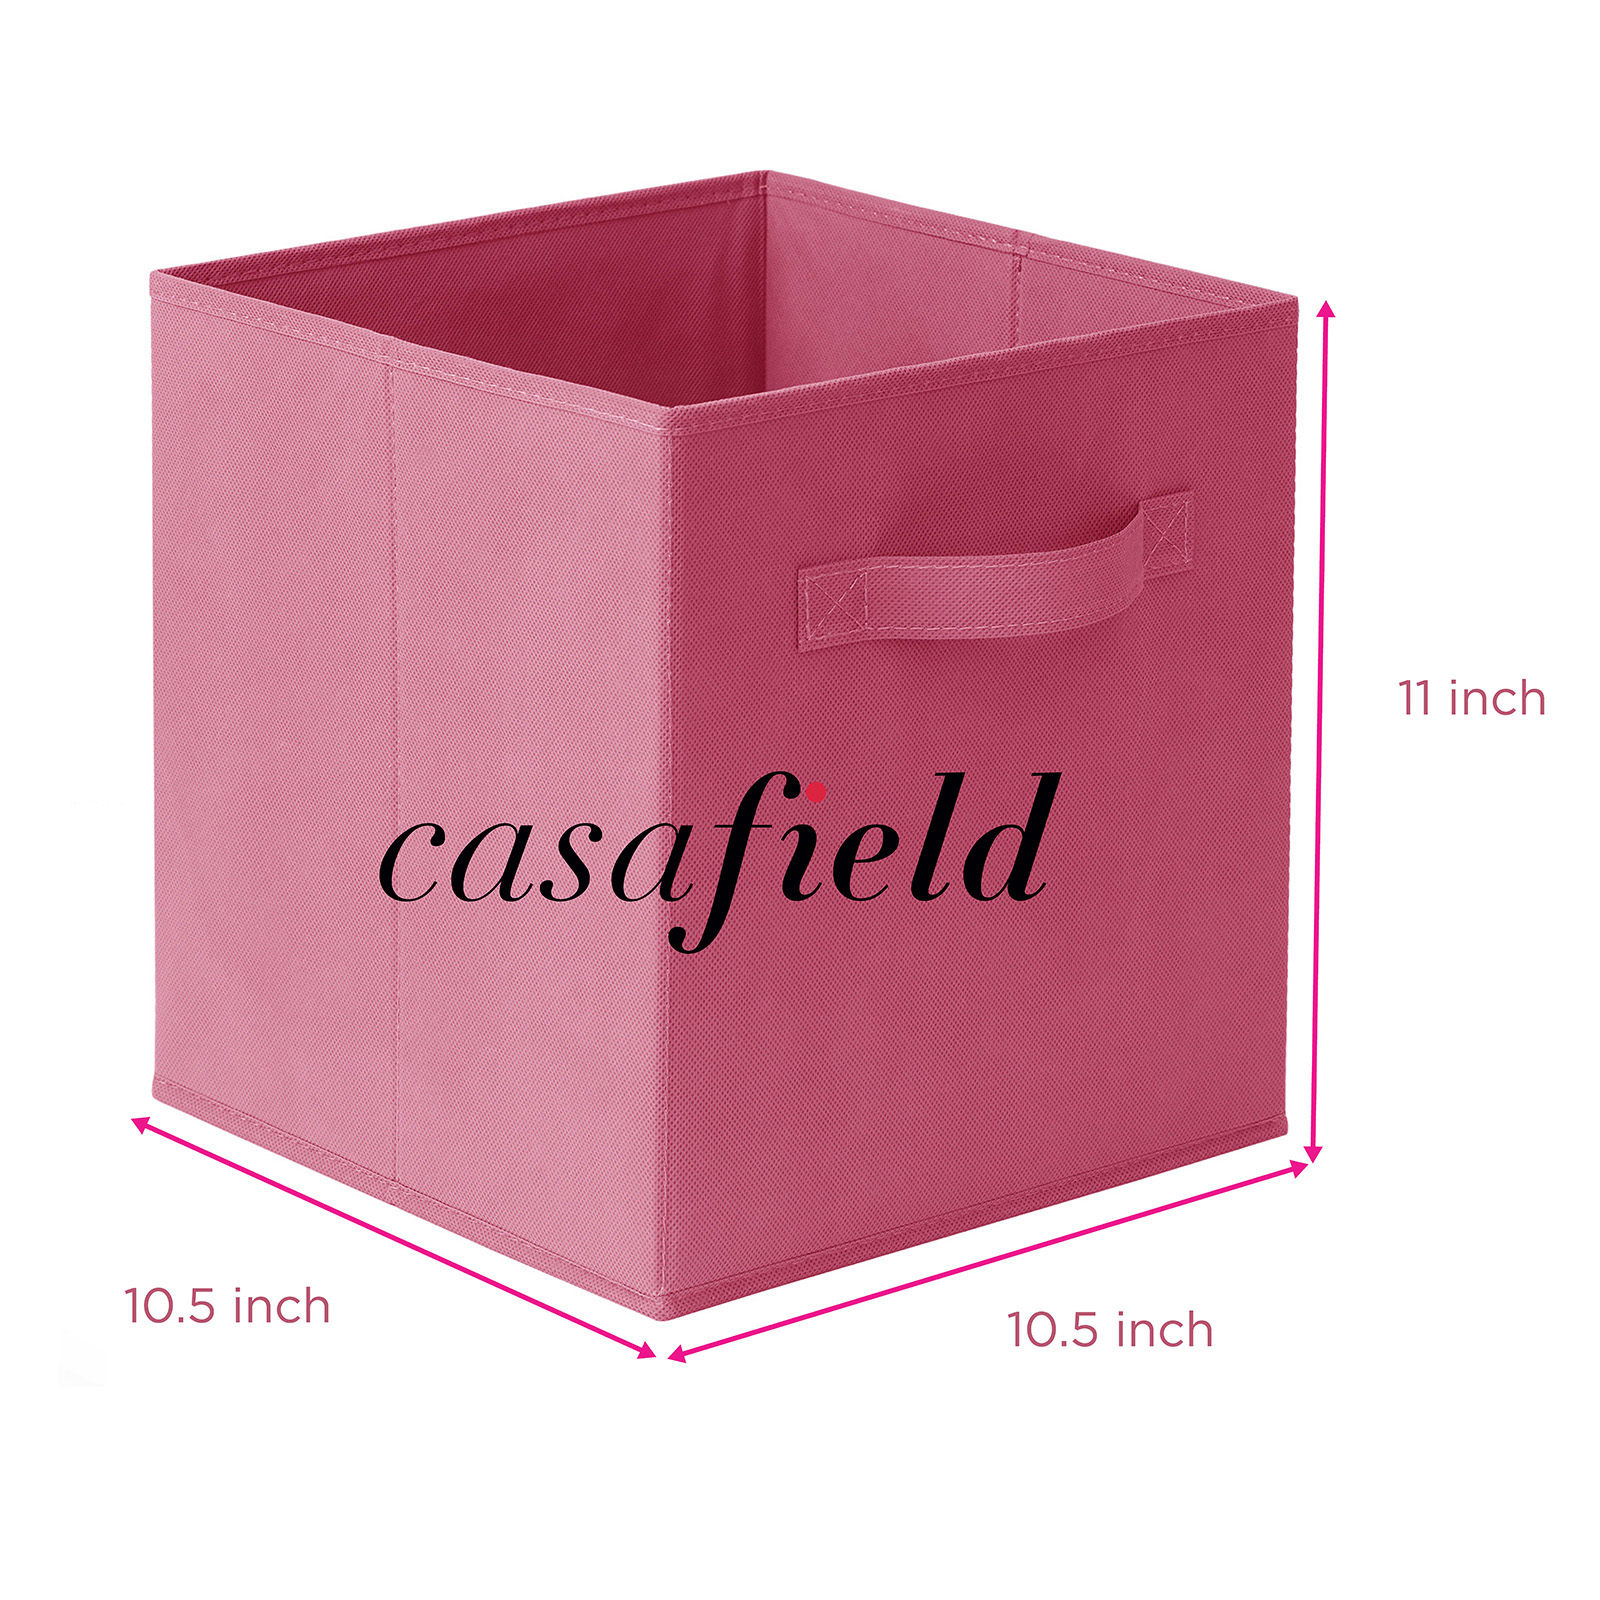 6-Collapsible-Foldable-Cloth-Fabric-Cubby-Cube-Storage-Bins-Baskets-for-Shelves thumbnail 33